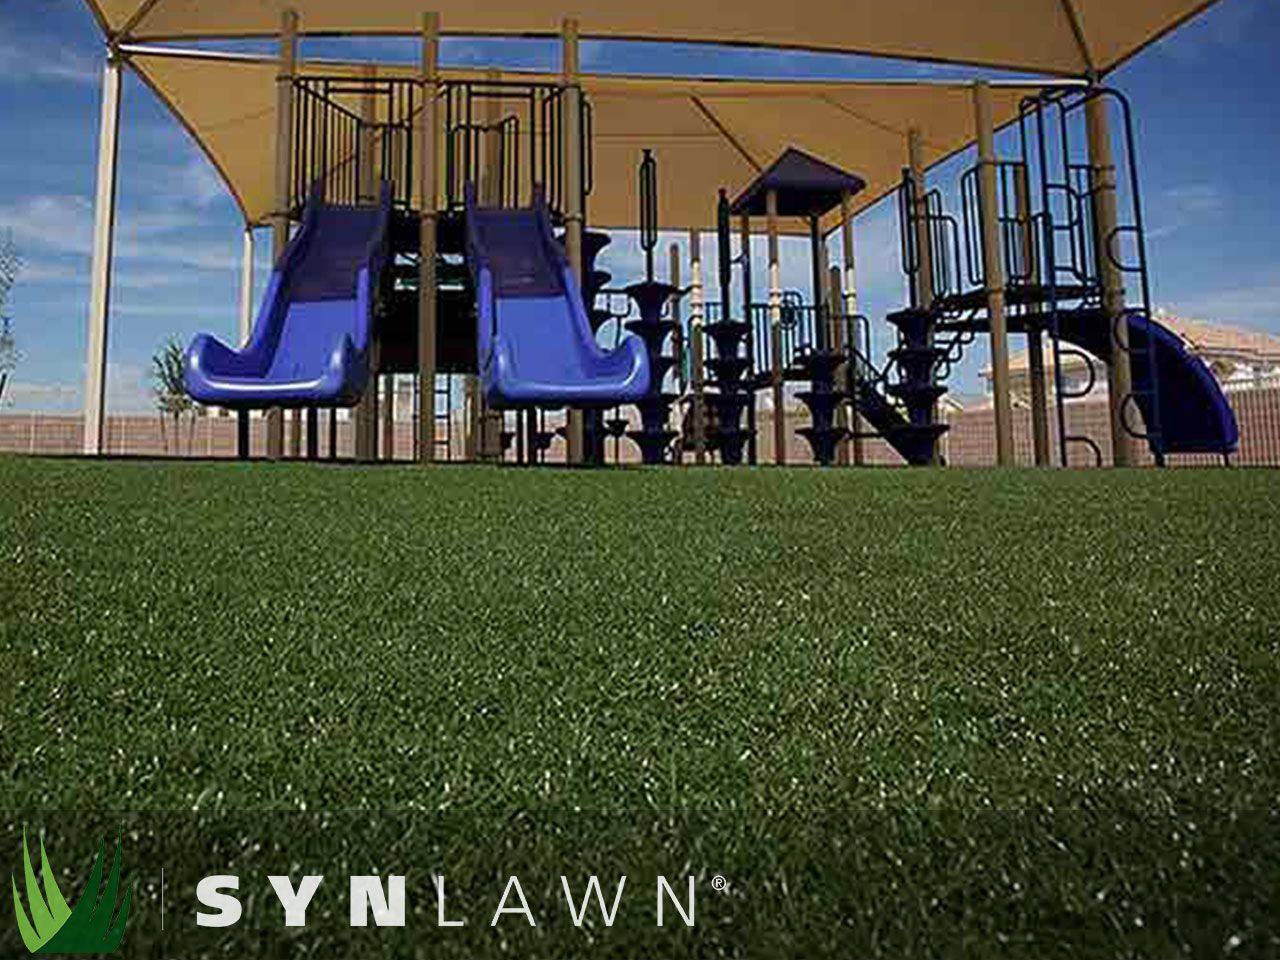 SYNLawn Playground Photo 34